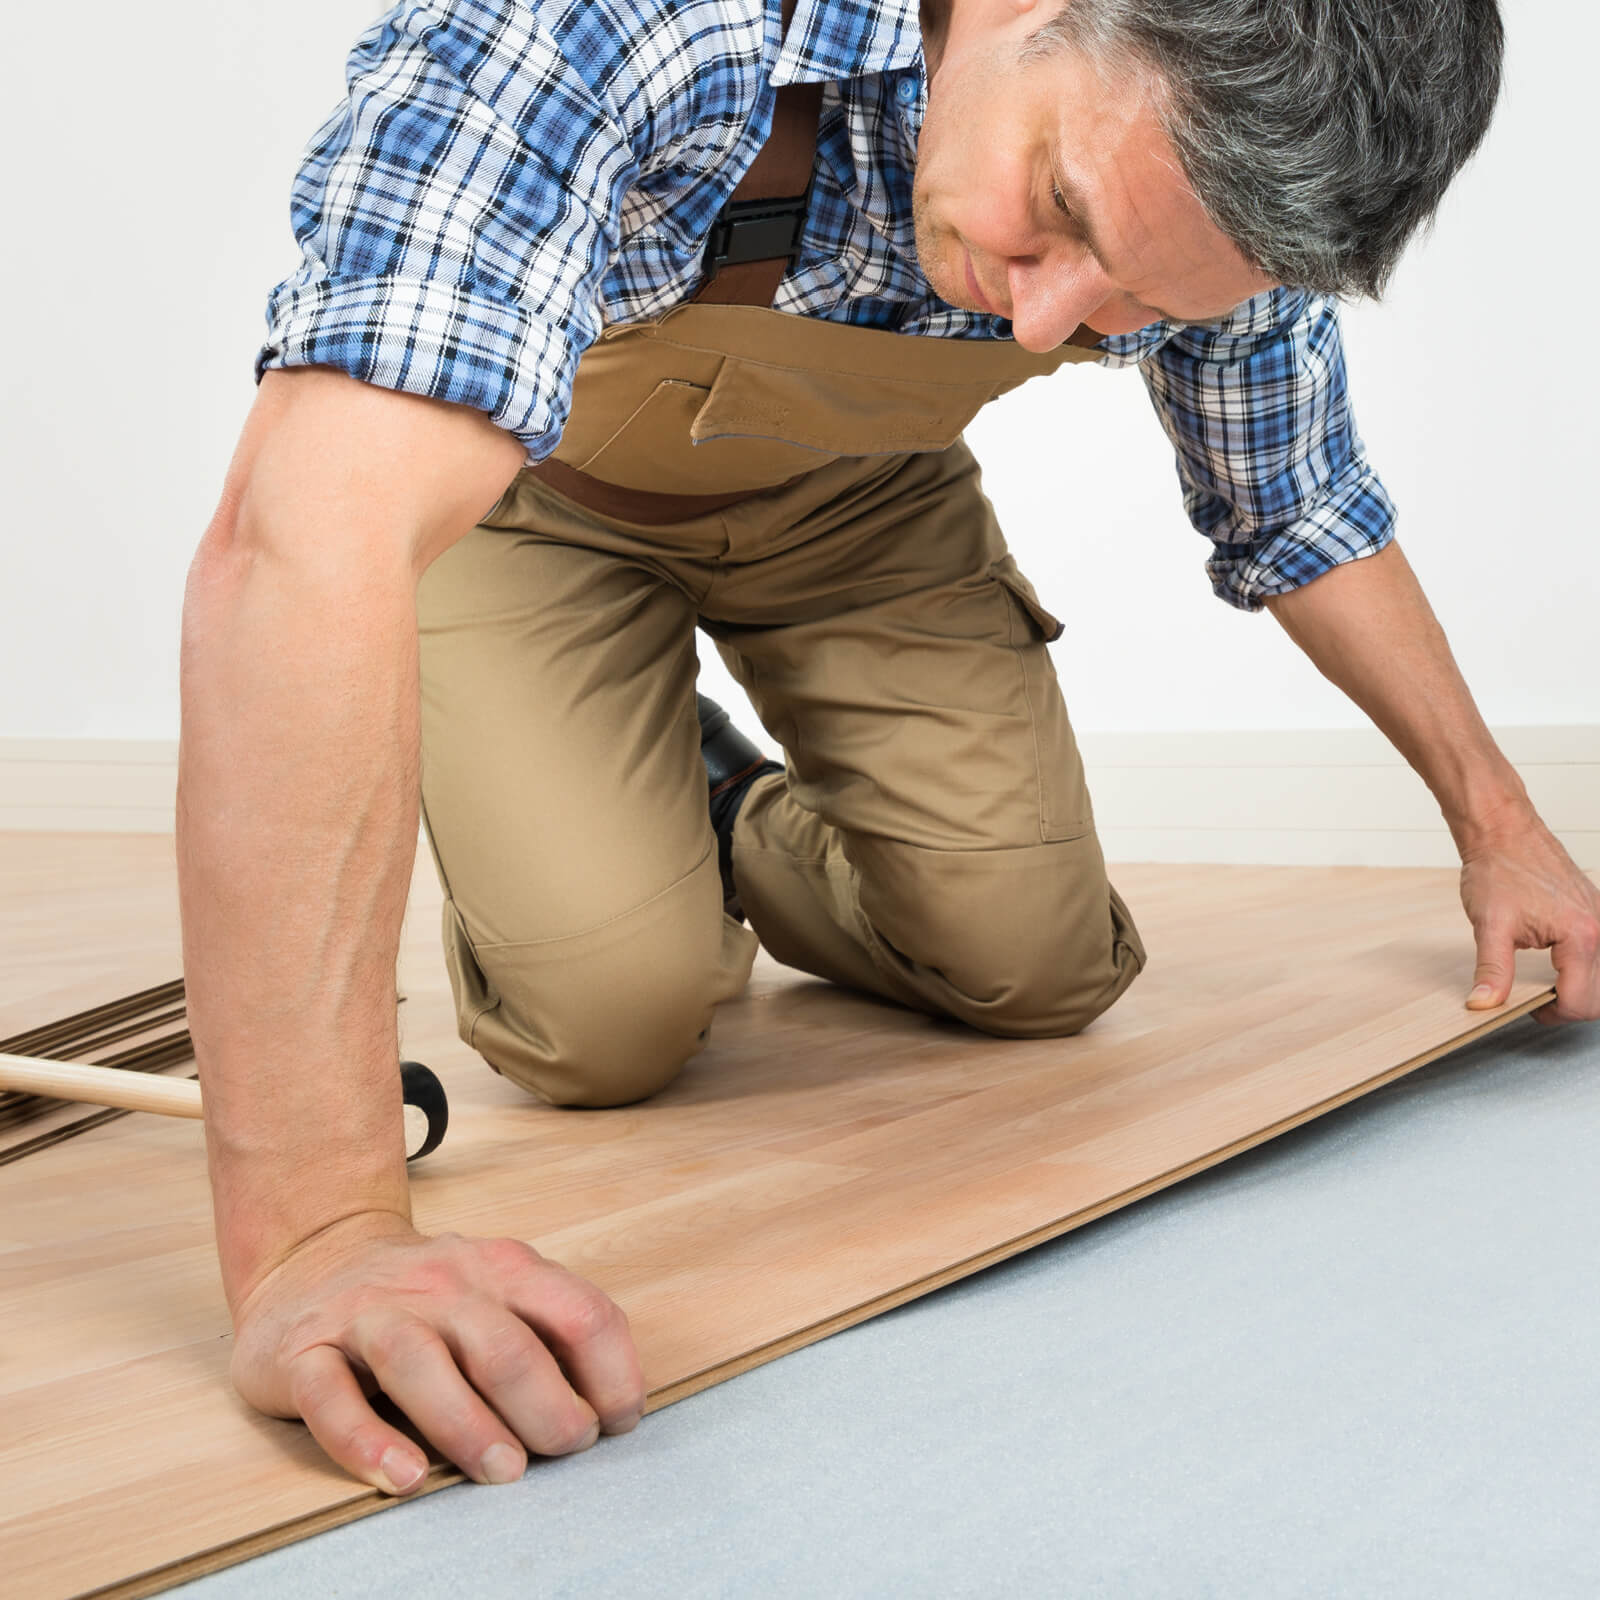 Laminate installation | Vic's Carpet & Flooring